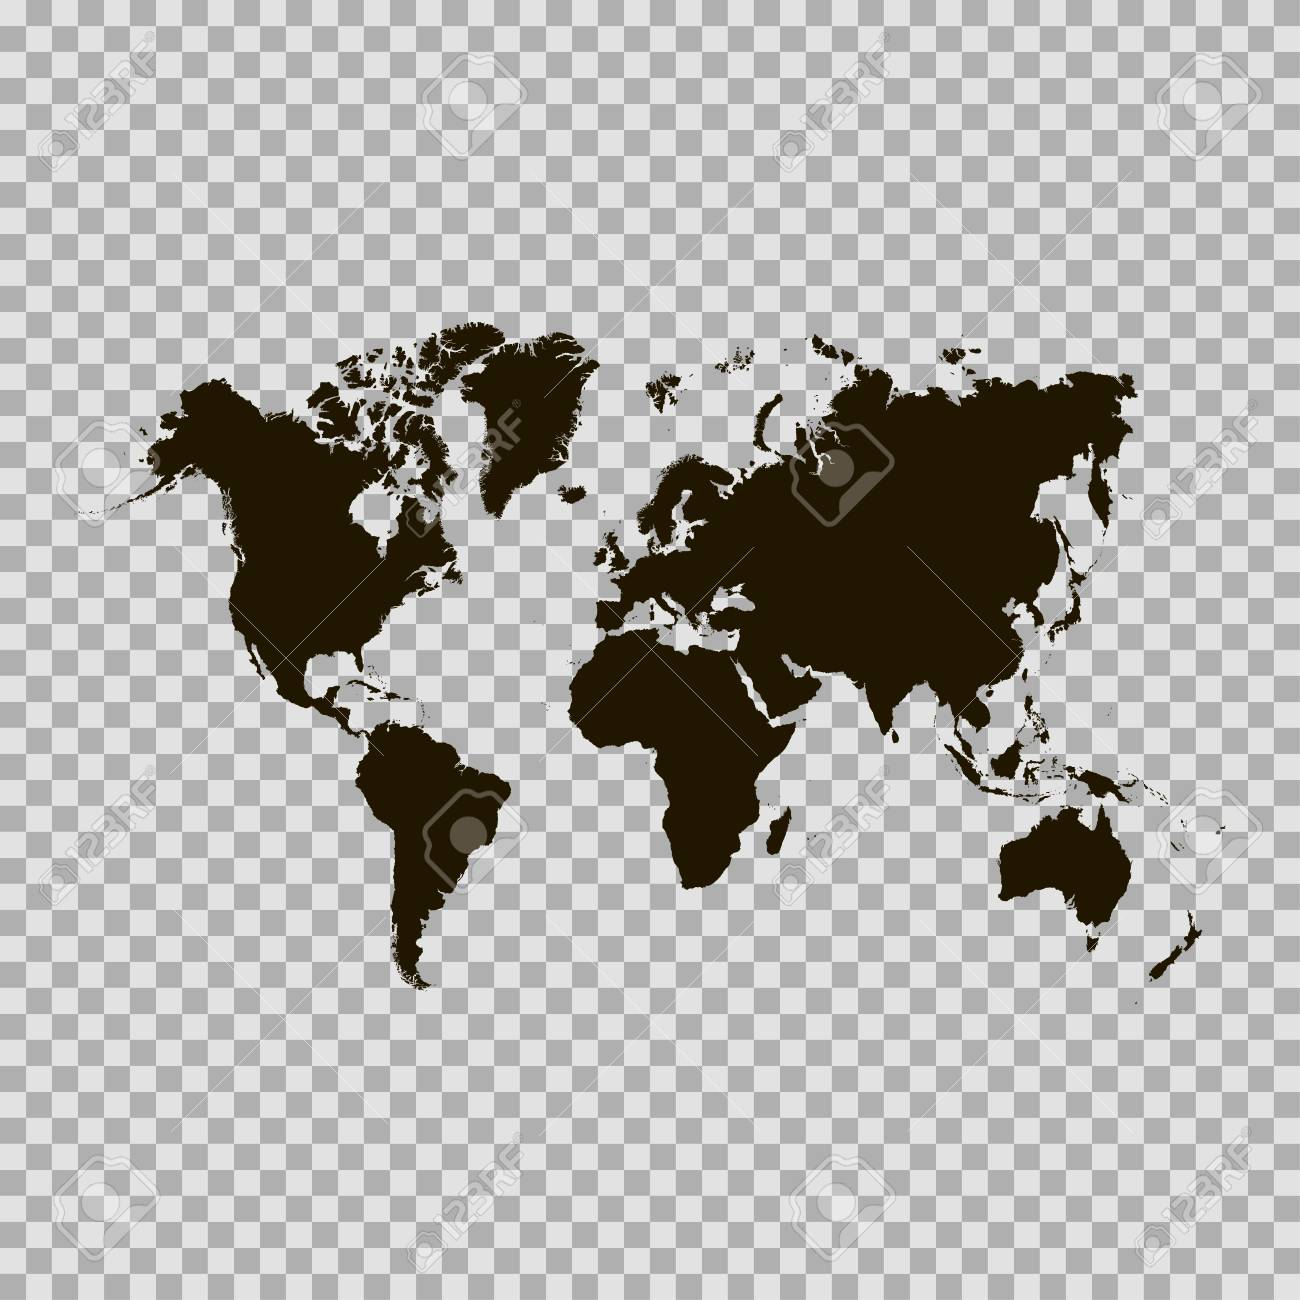 Black Similar World Map. World Map Blank. World Map Vector. World ...